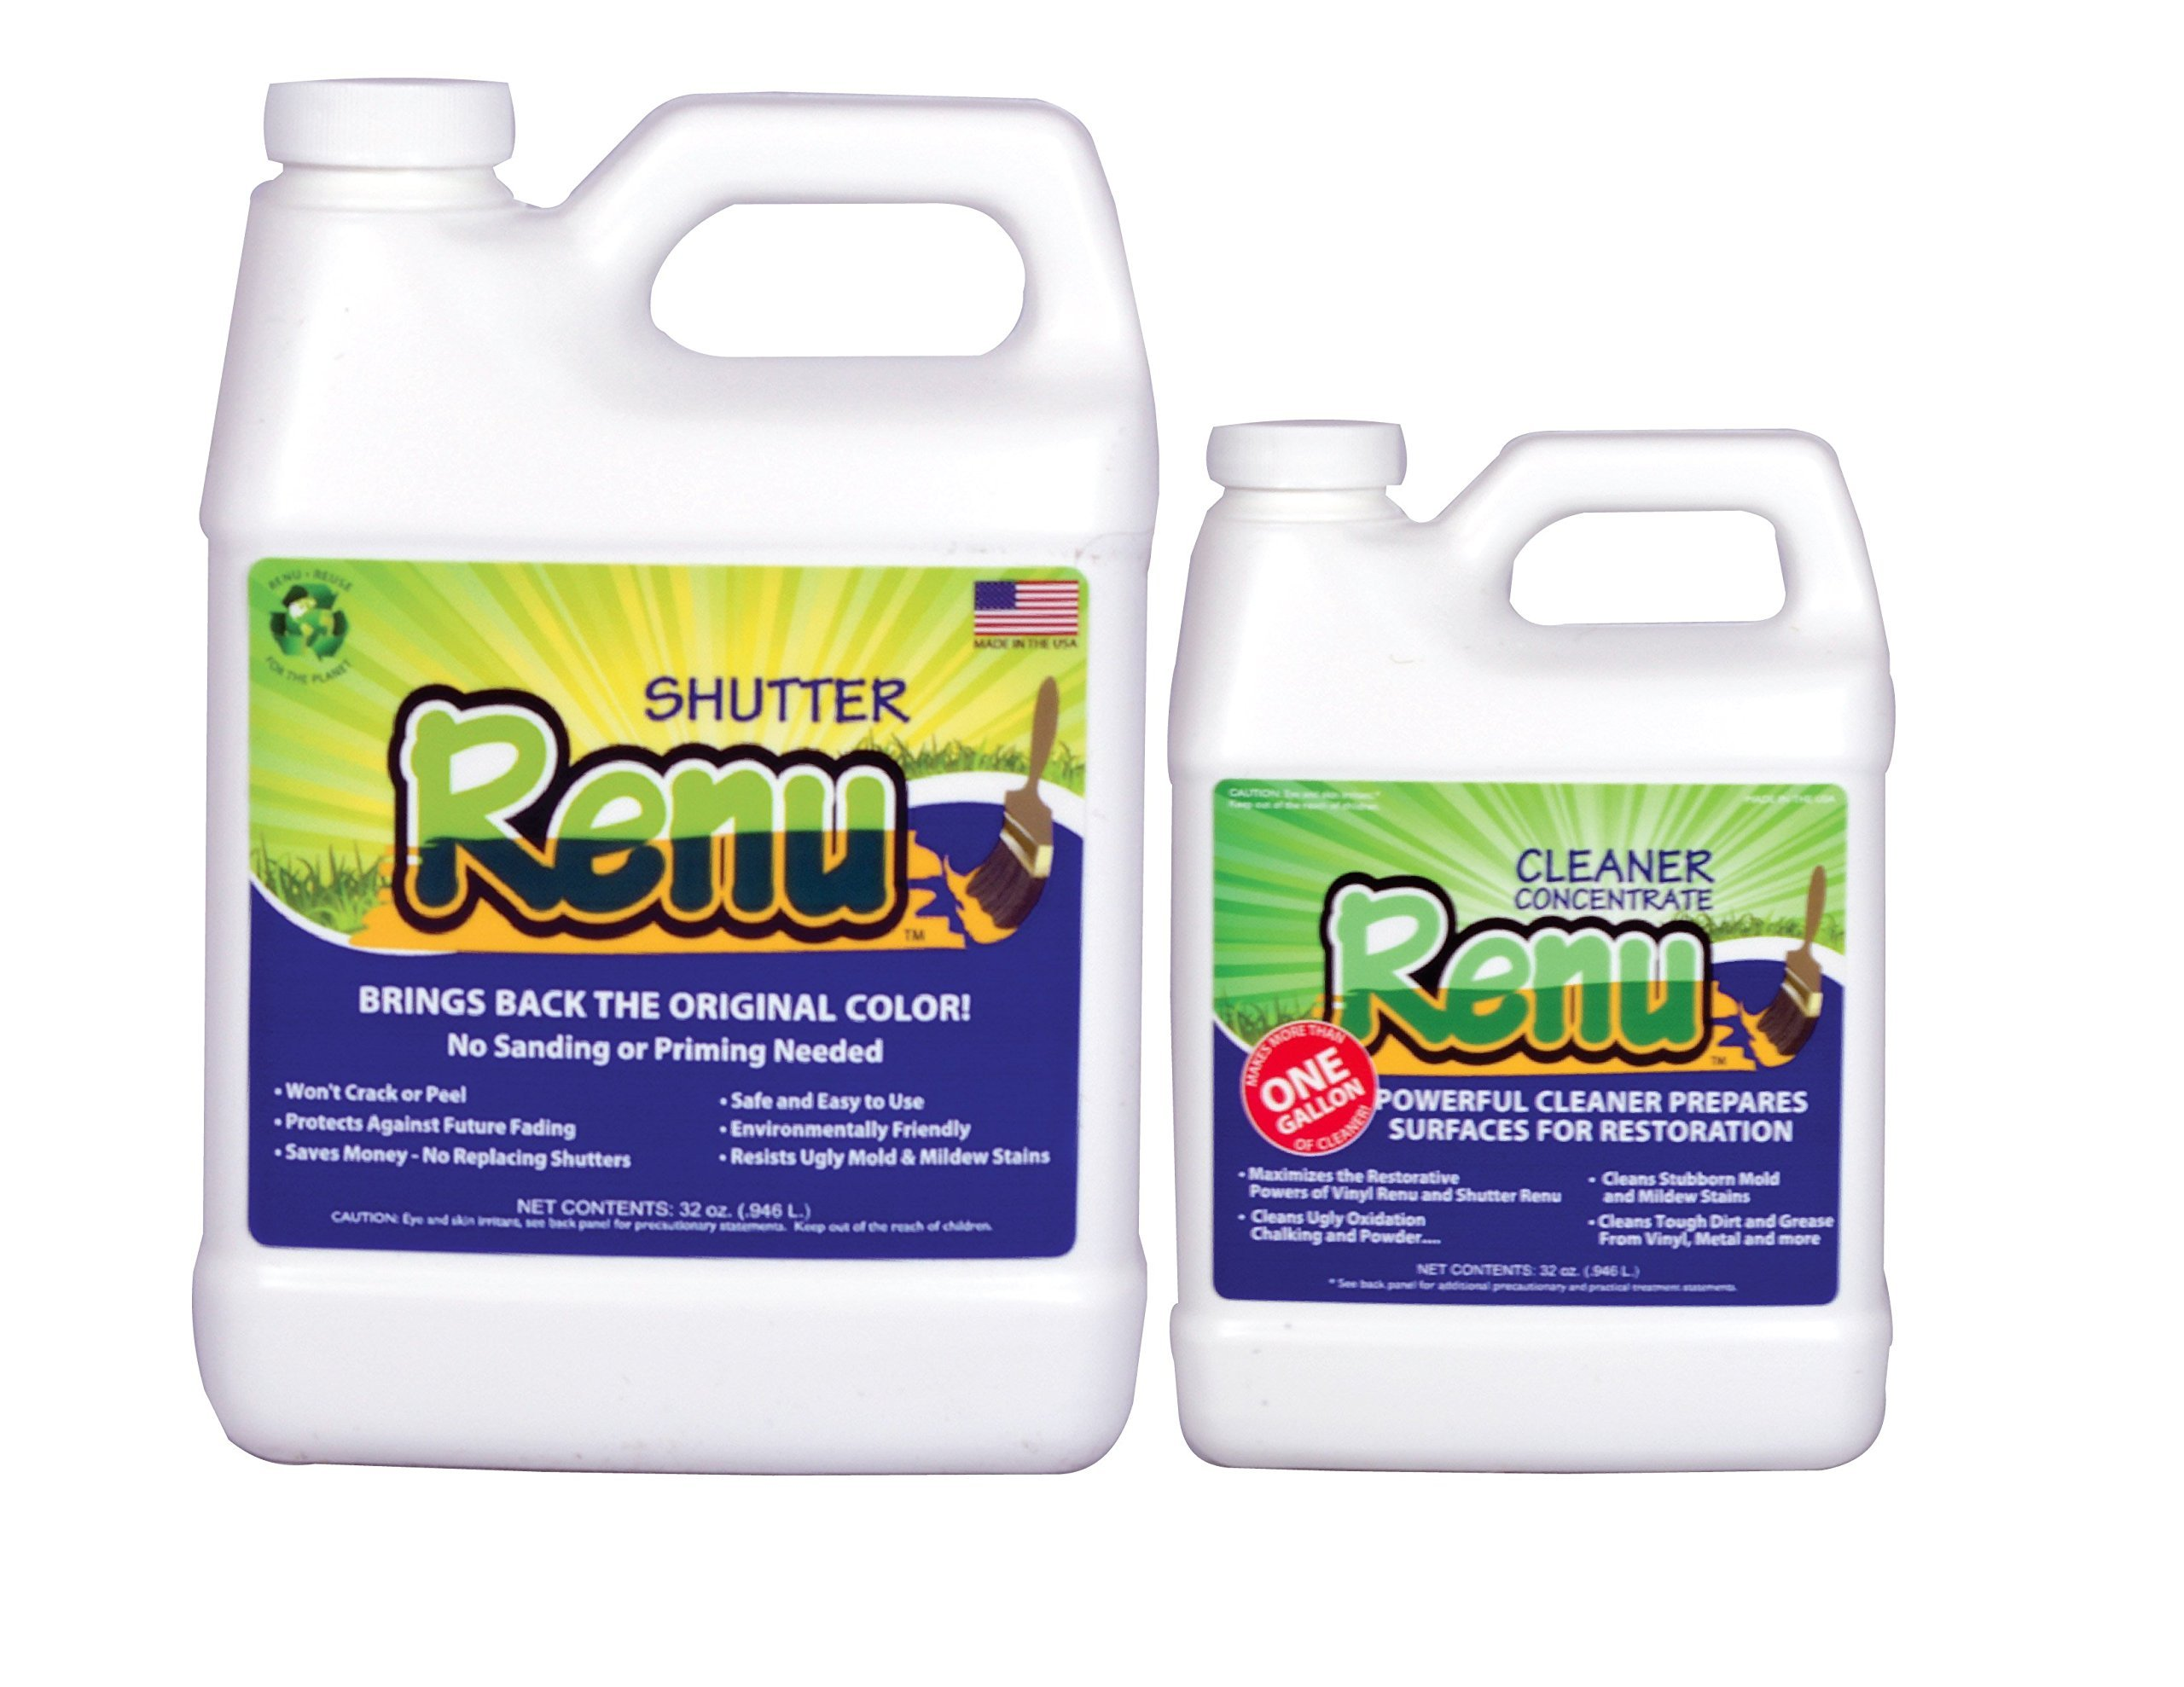 Shutter Renu 18-24 Shutter Kit Restores Original Color And Luster To Faded Shutters. Immediate Results. Apply Once Every 10 Years. No Toxic Odors. Use on shutters, garage doors, mailboxes and more. by Shutter Renu (Image #1)